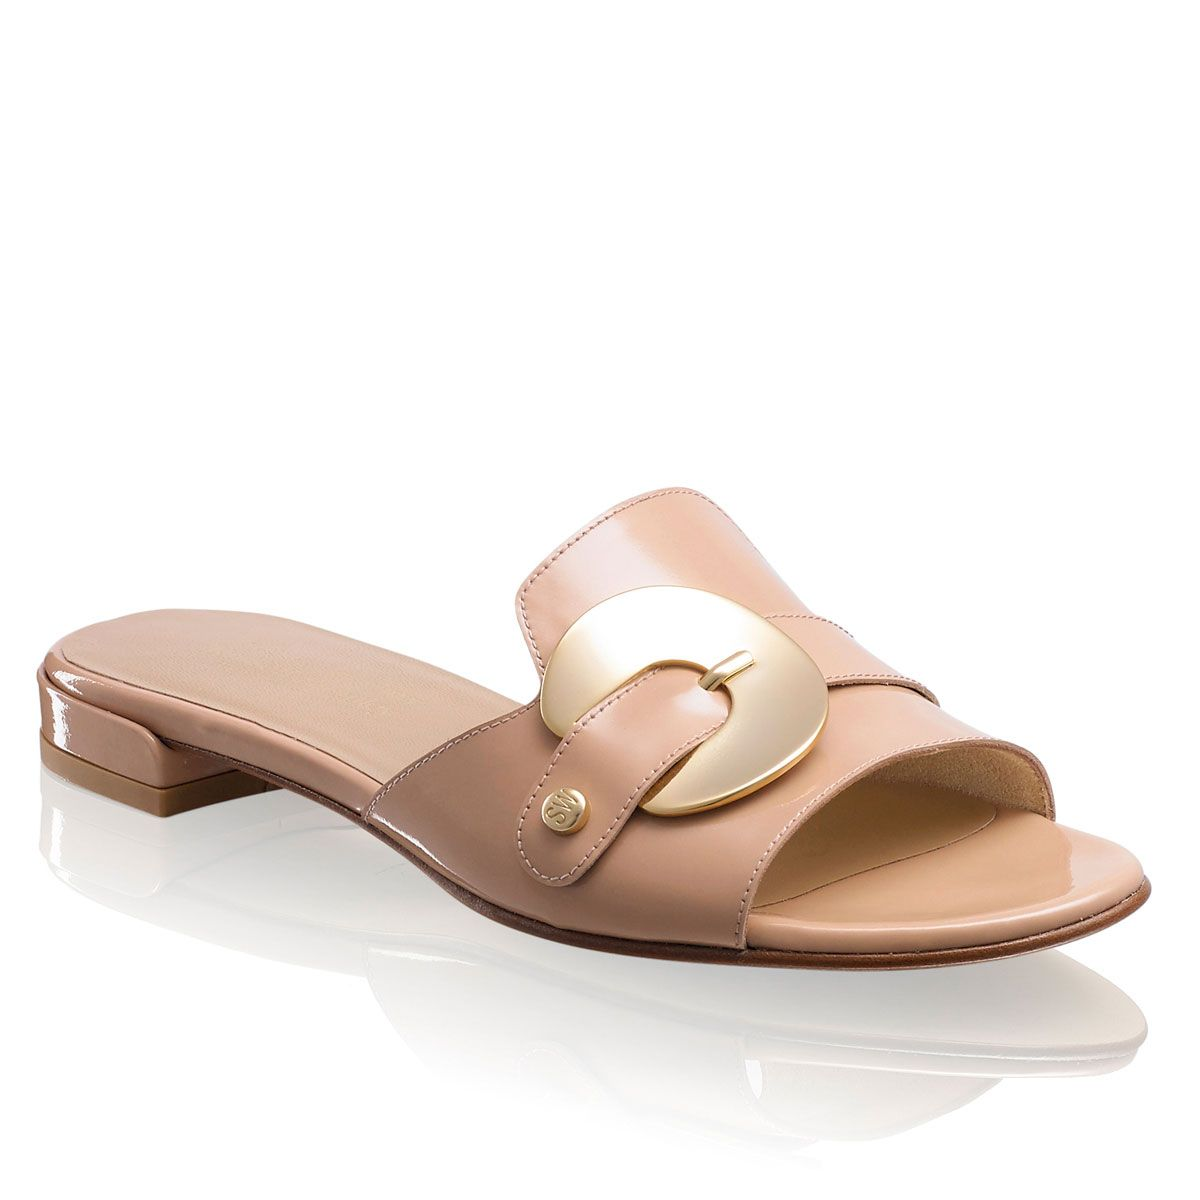 russell bromley sandals